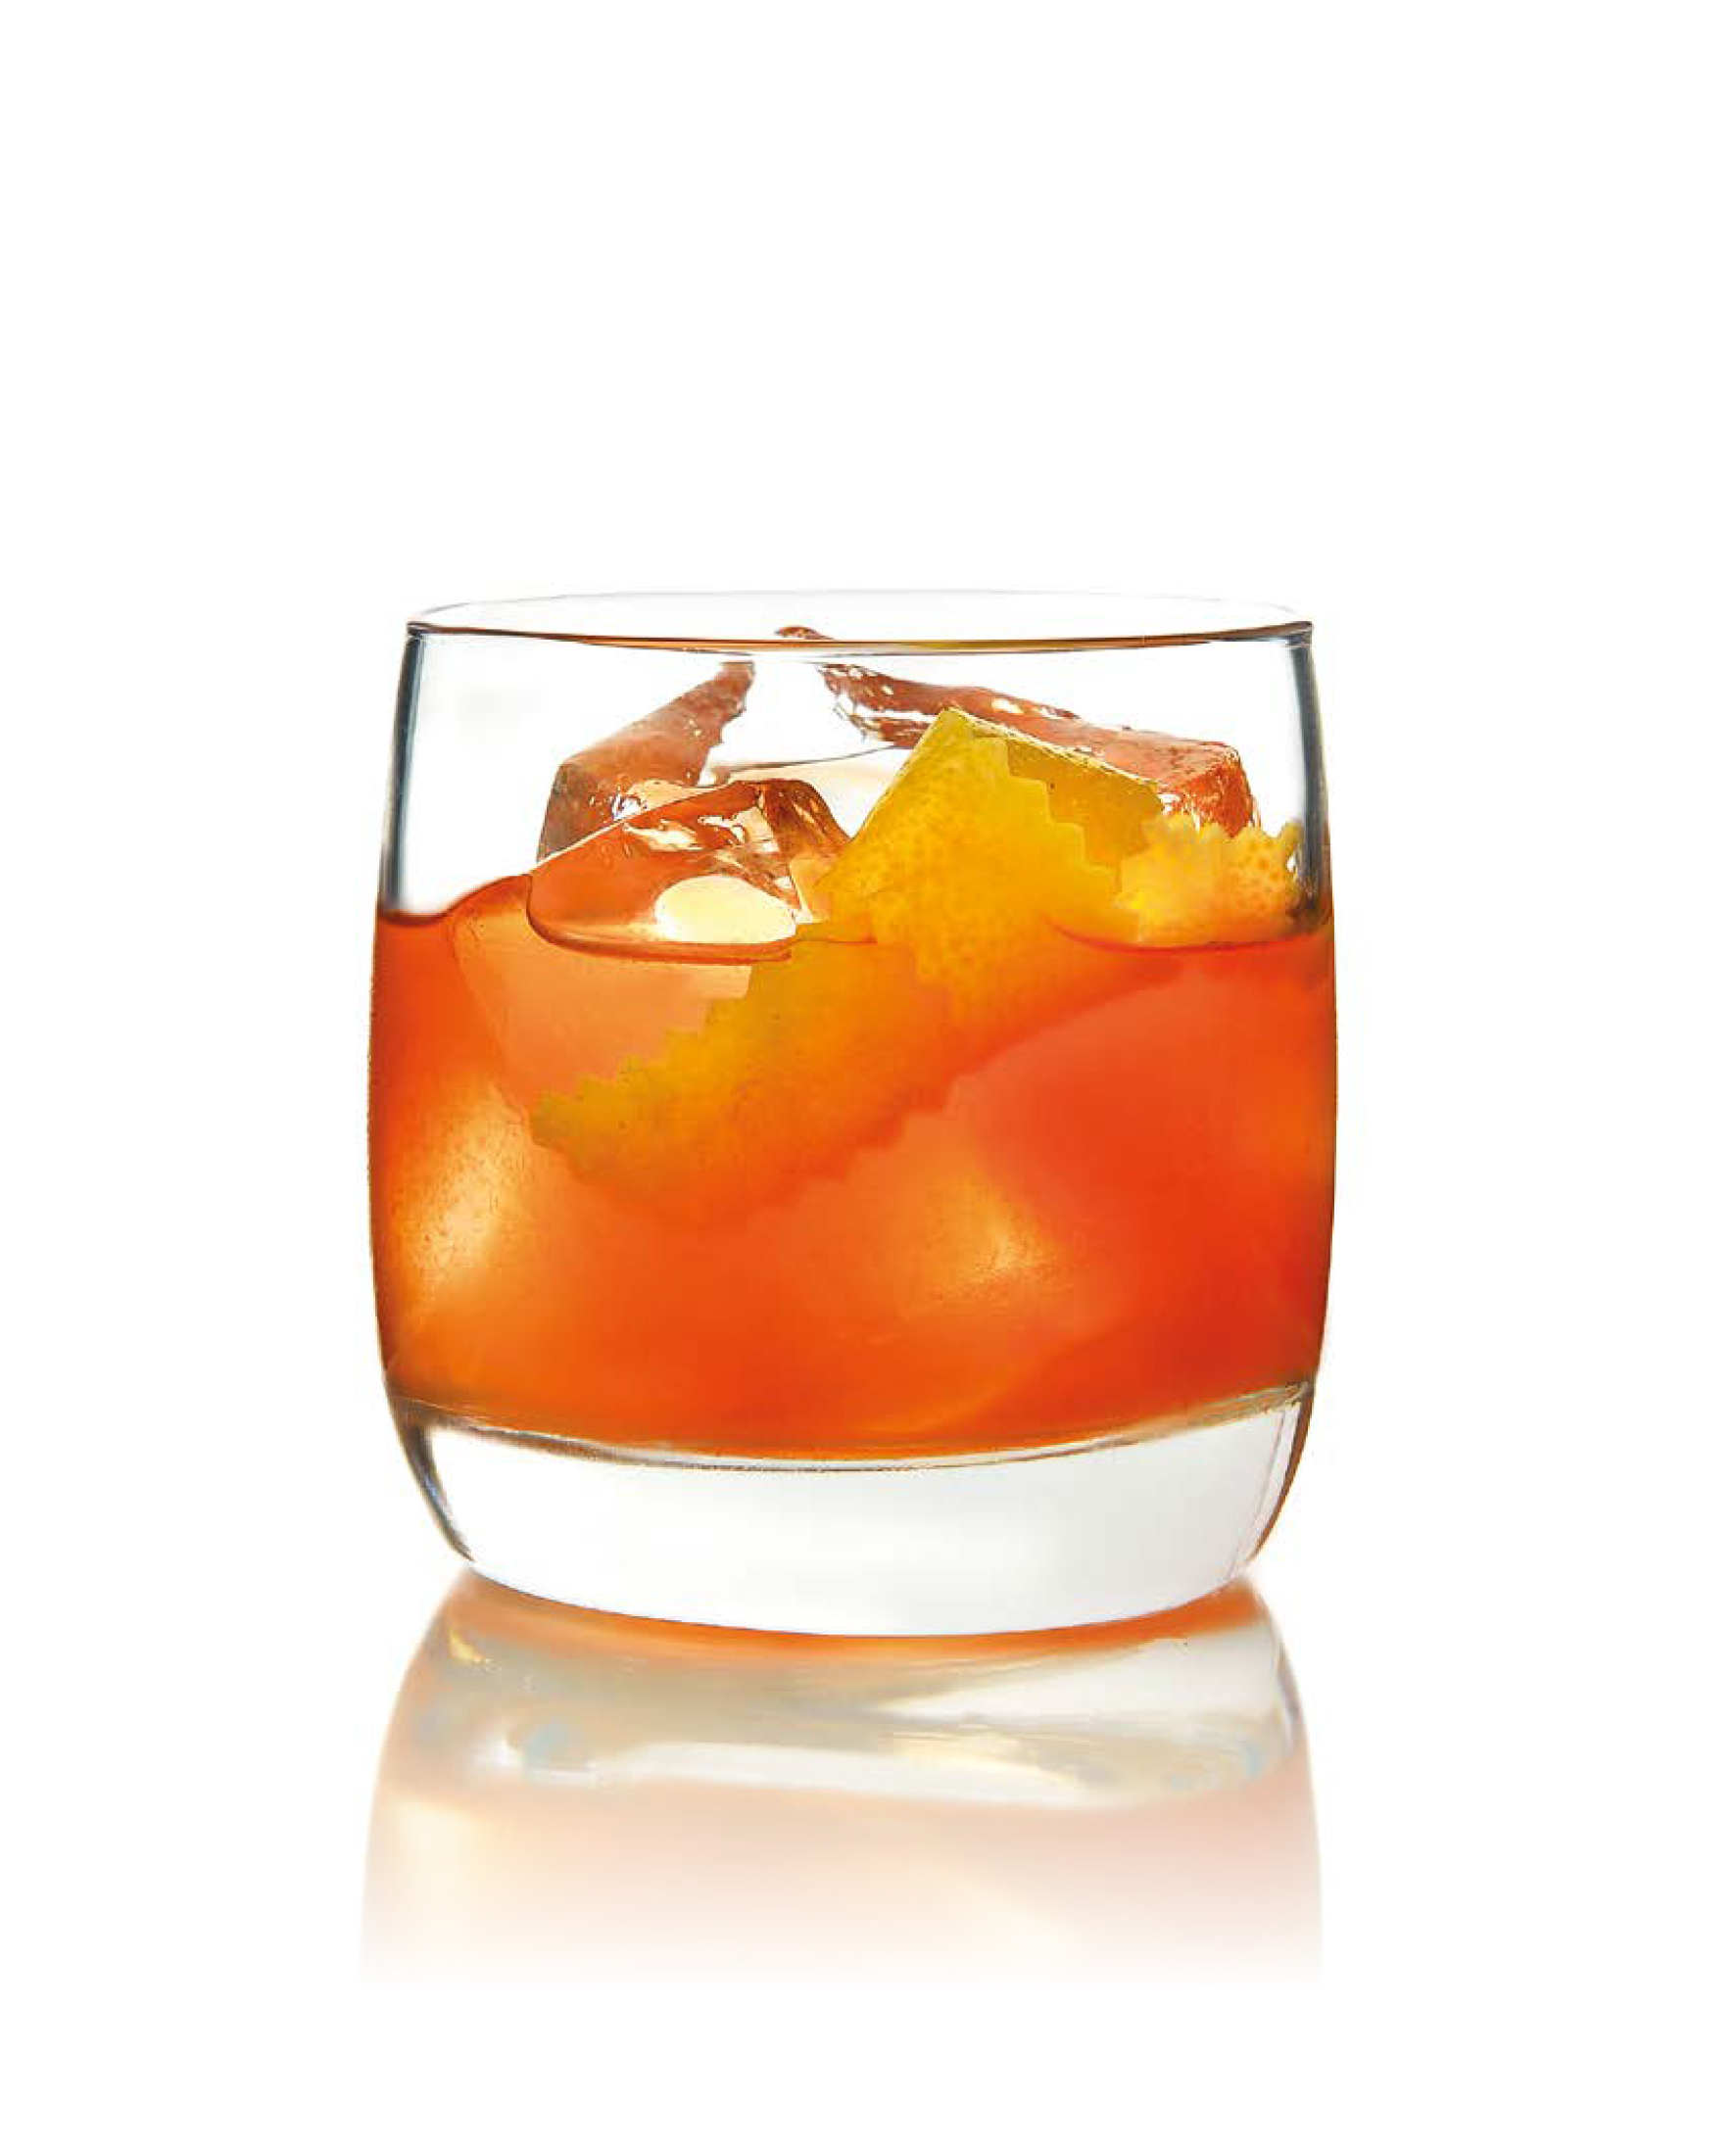 ELIXIR D'ANVERS OLD-FASHIONED